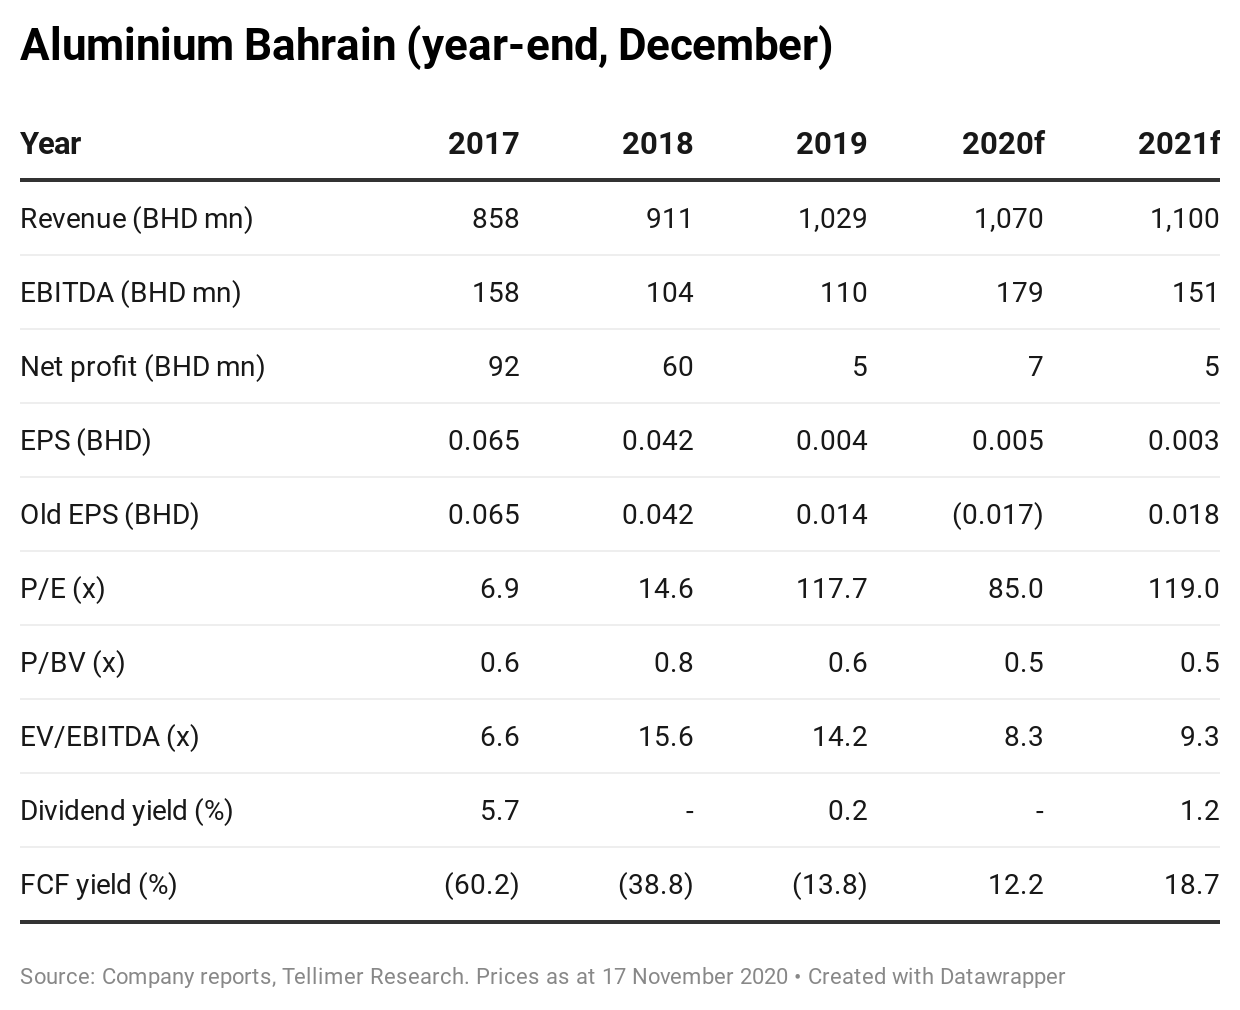 Aluminium Bahrain (year-end, December)